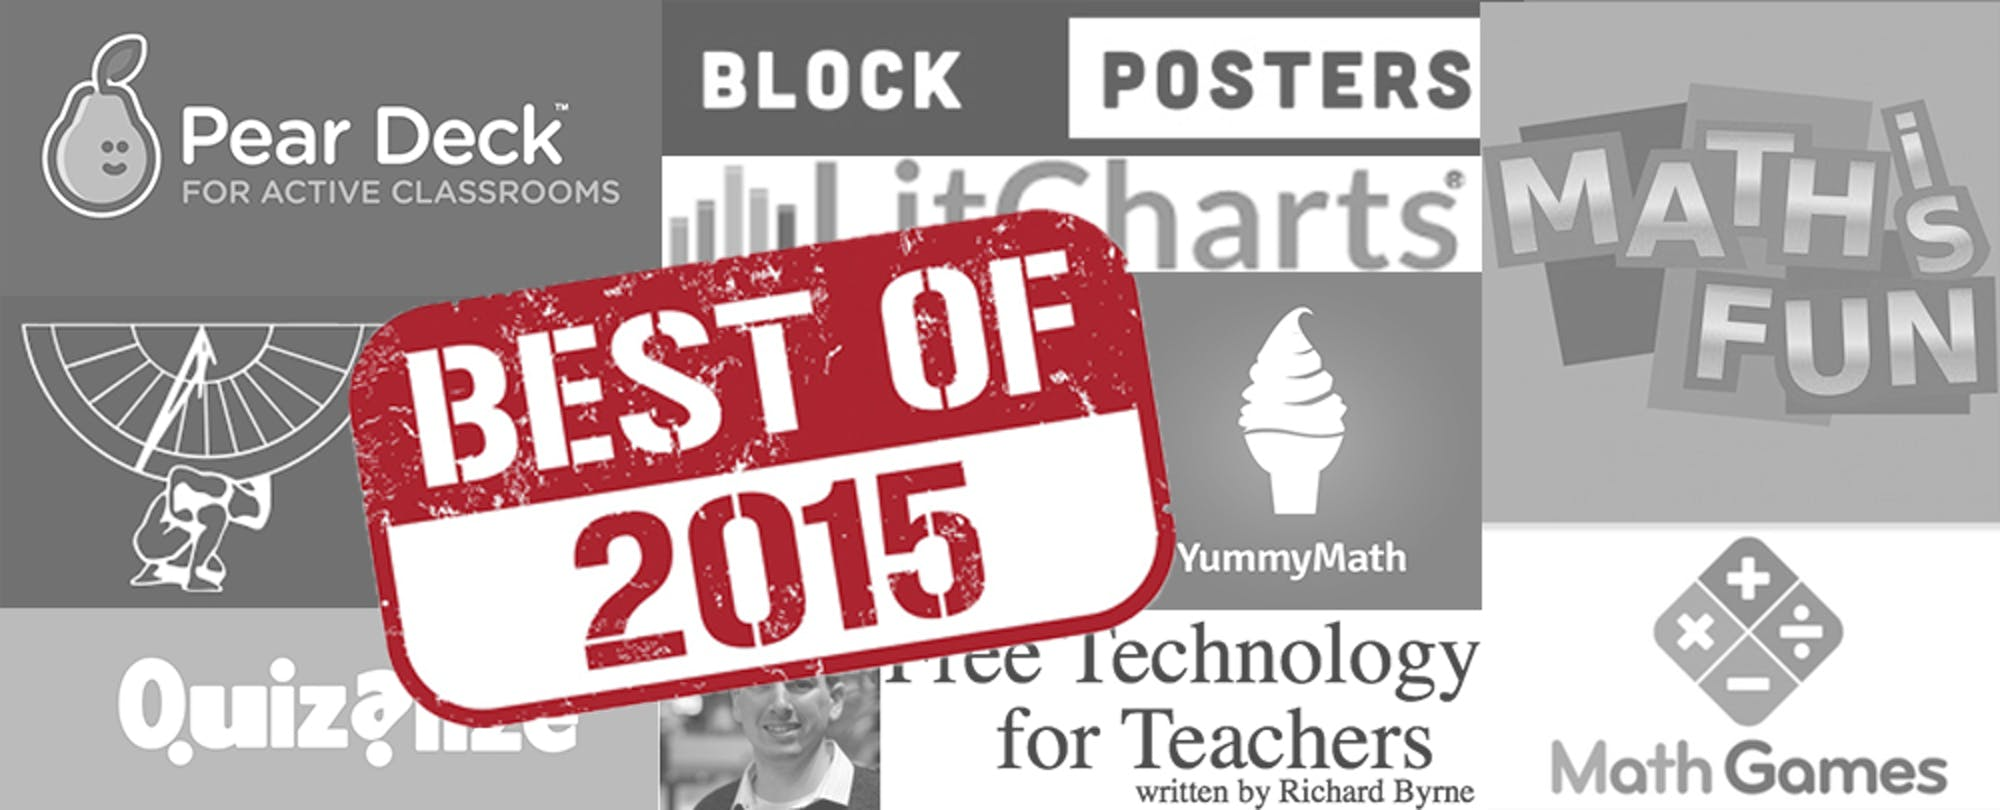 Counting Down EdSurge's Top Ten S'Cool Tools of 2015